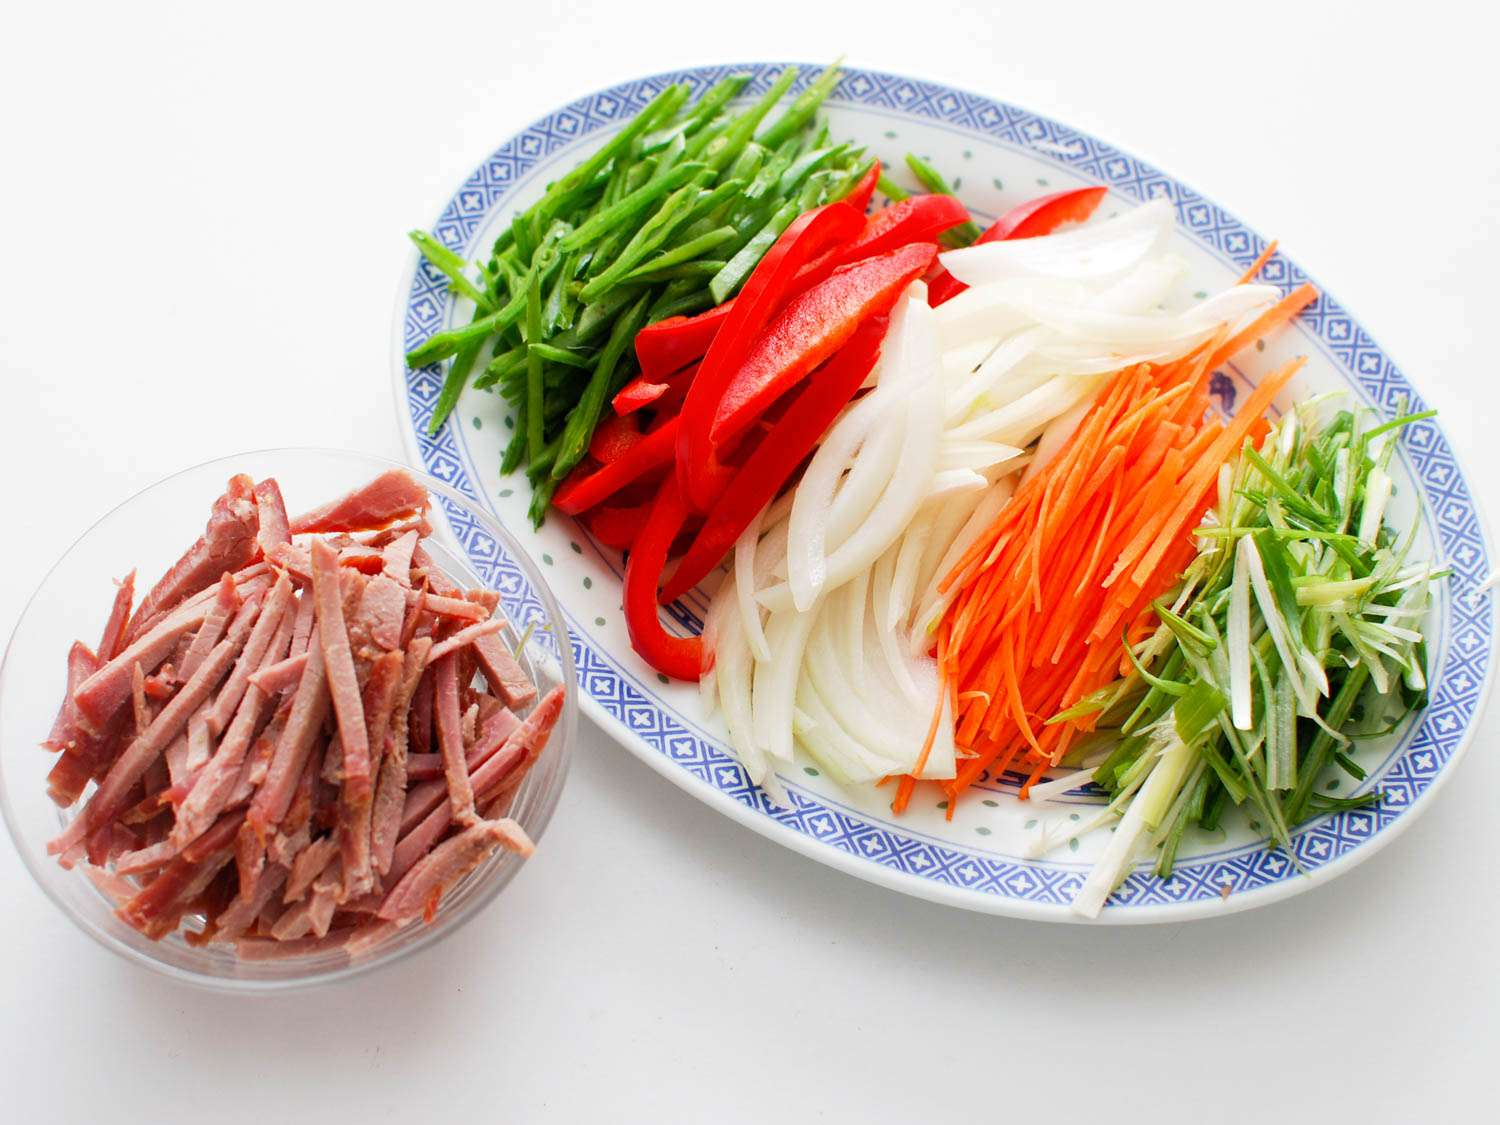 Thin sliced snow peas, red bell peppers, onion, carrot, and scallions in a platter next to a small bowl of char siu.